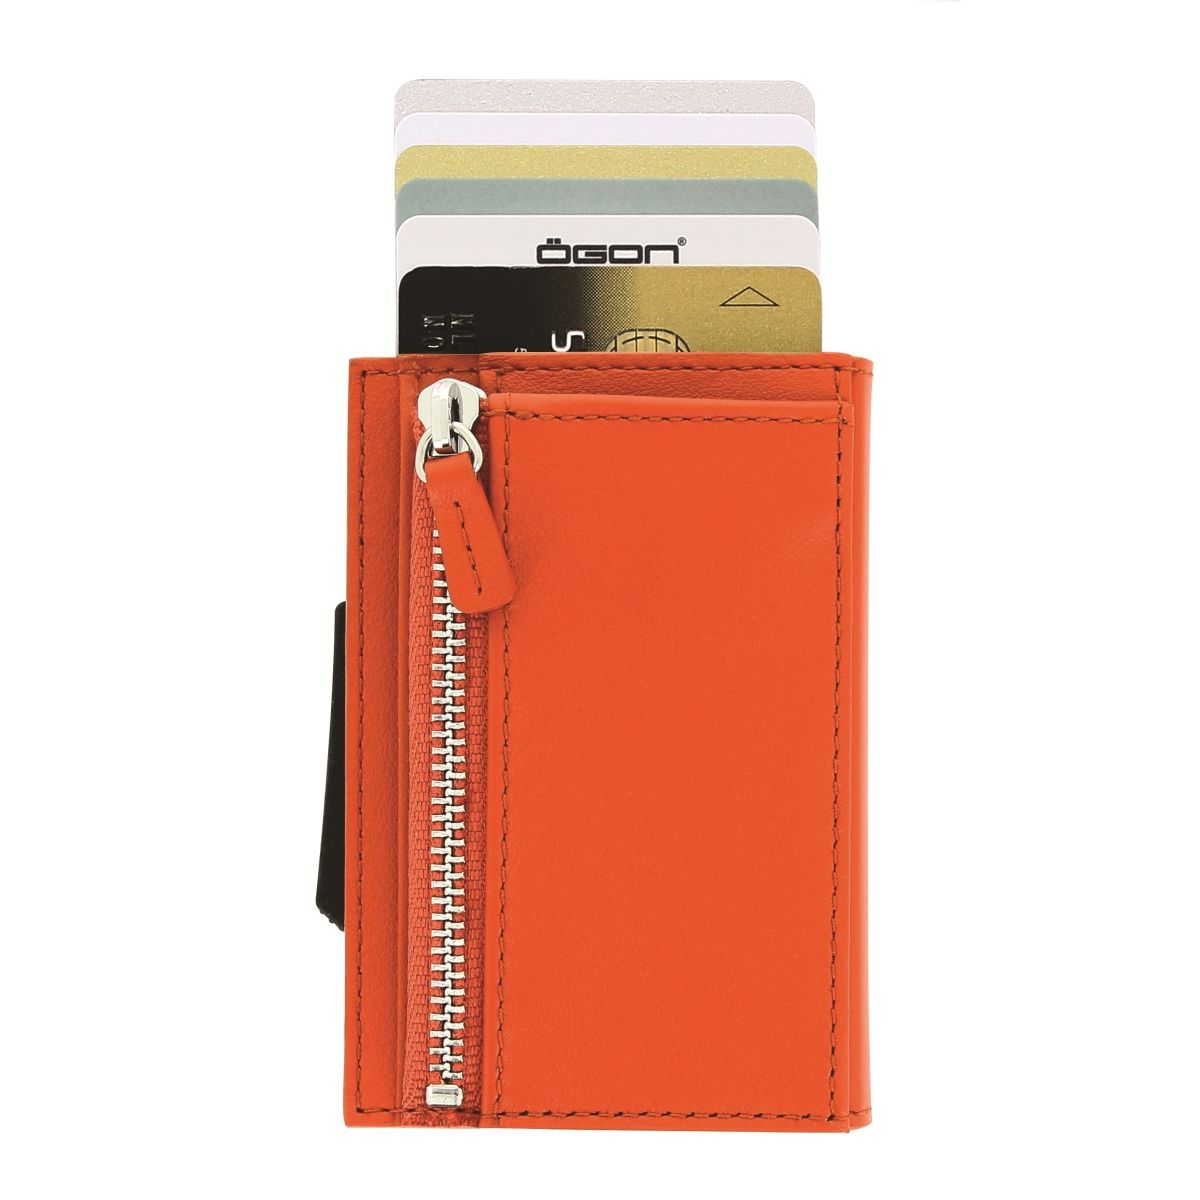 Cascade Card Case Wallet With Zipper - Orange